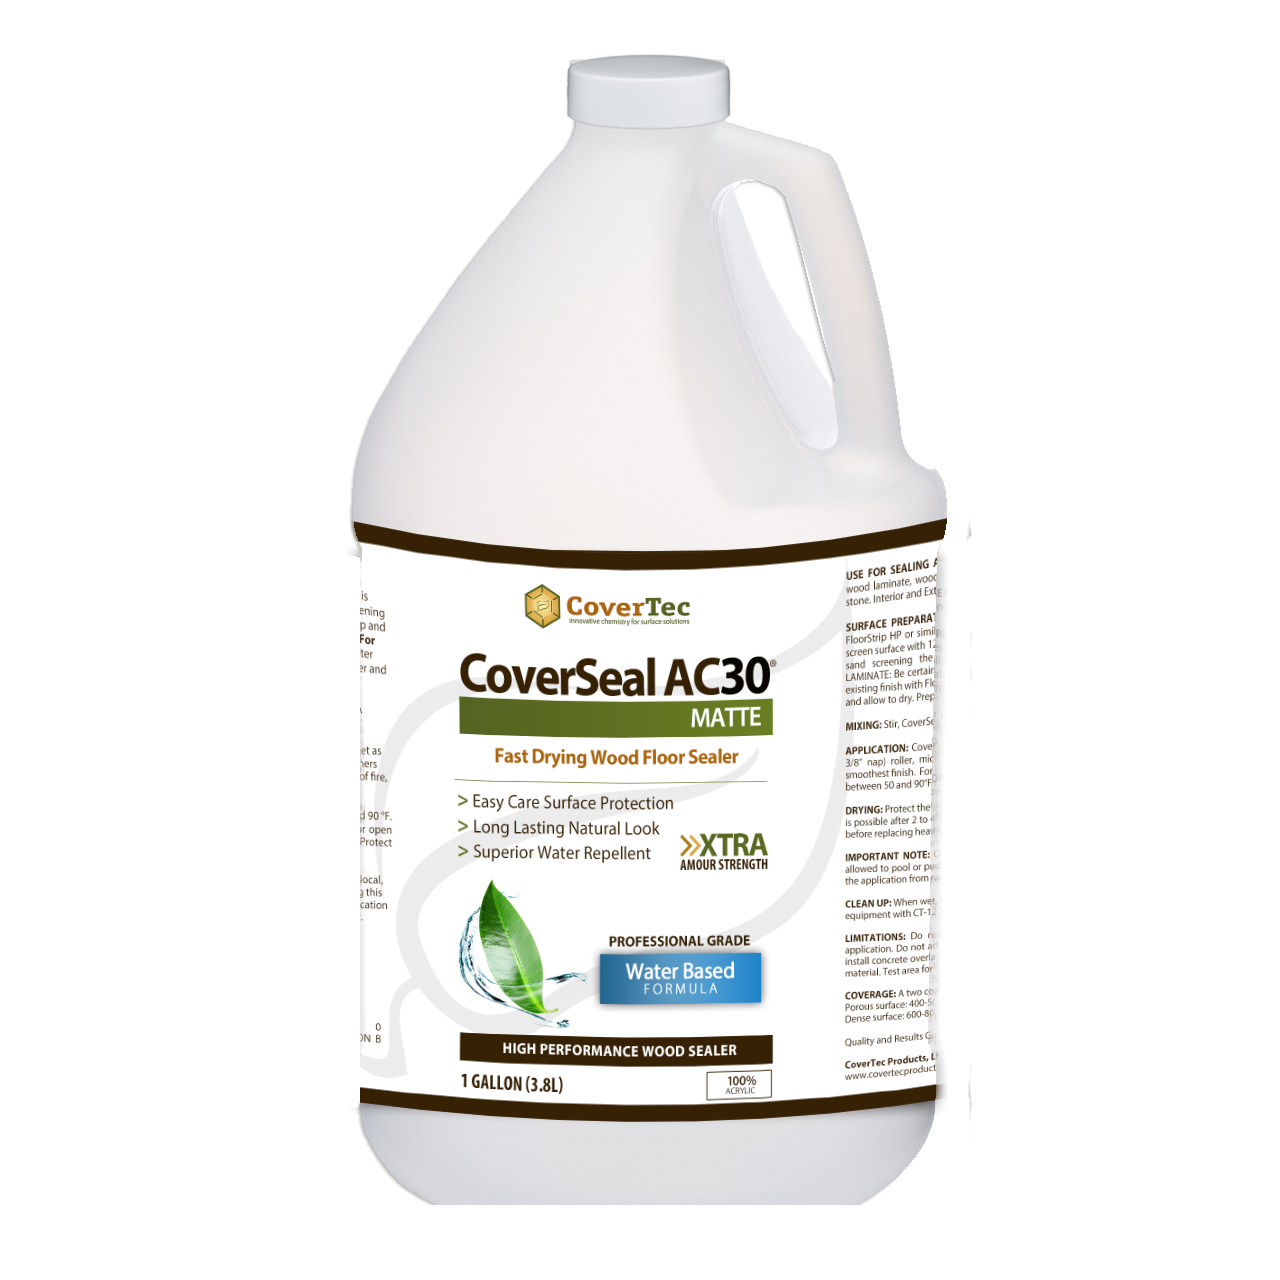 CoverSeal AC30 Matte Wood Floor/Laminated, Low Sheen Sealer